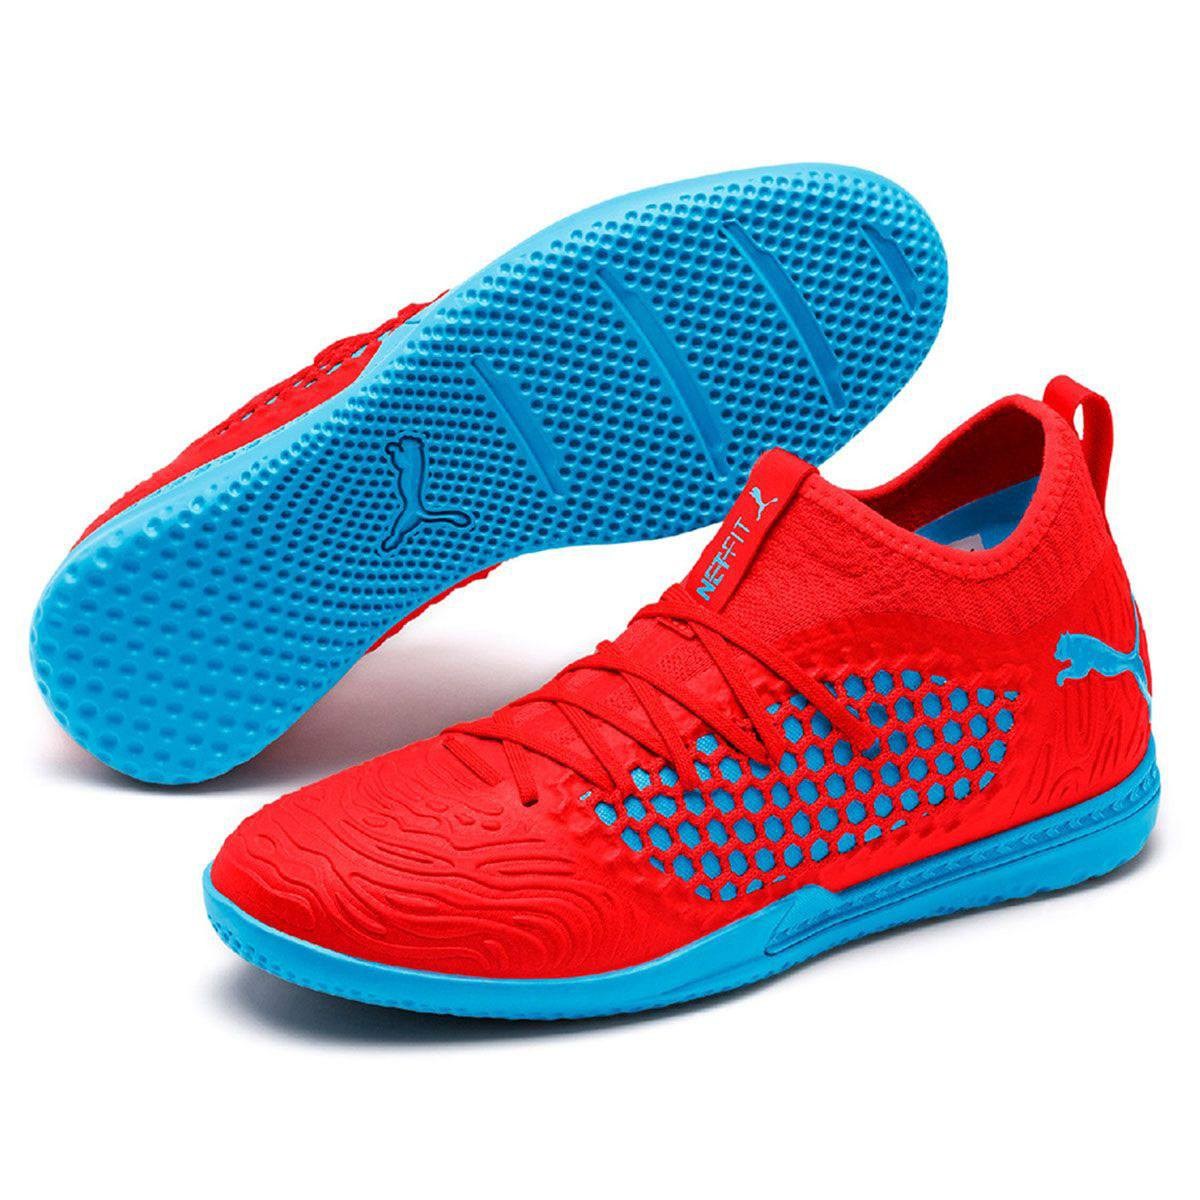 Chuteira Futsal Puma Future 19.3 Netfit It